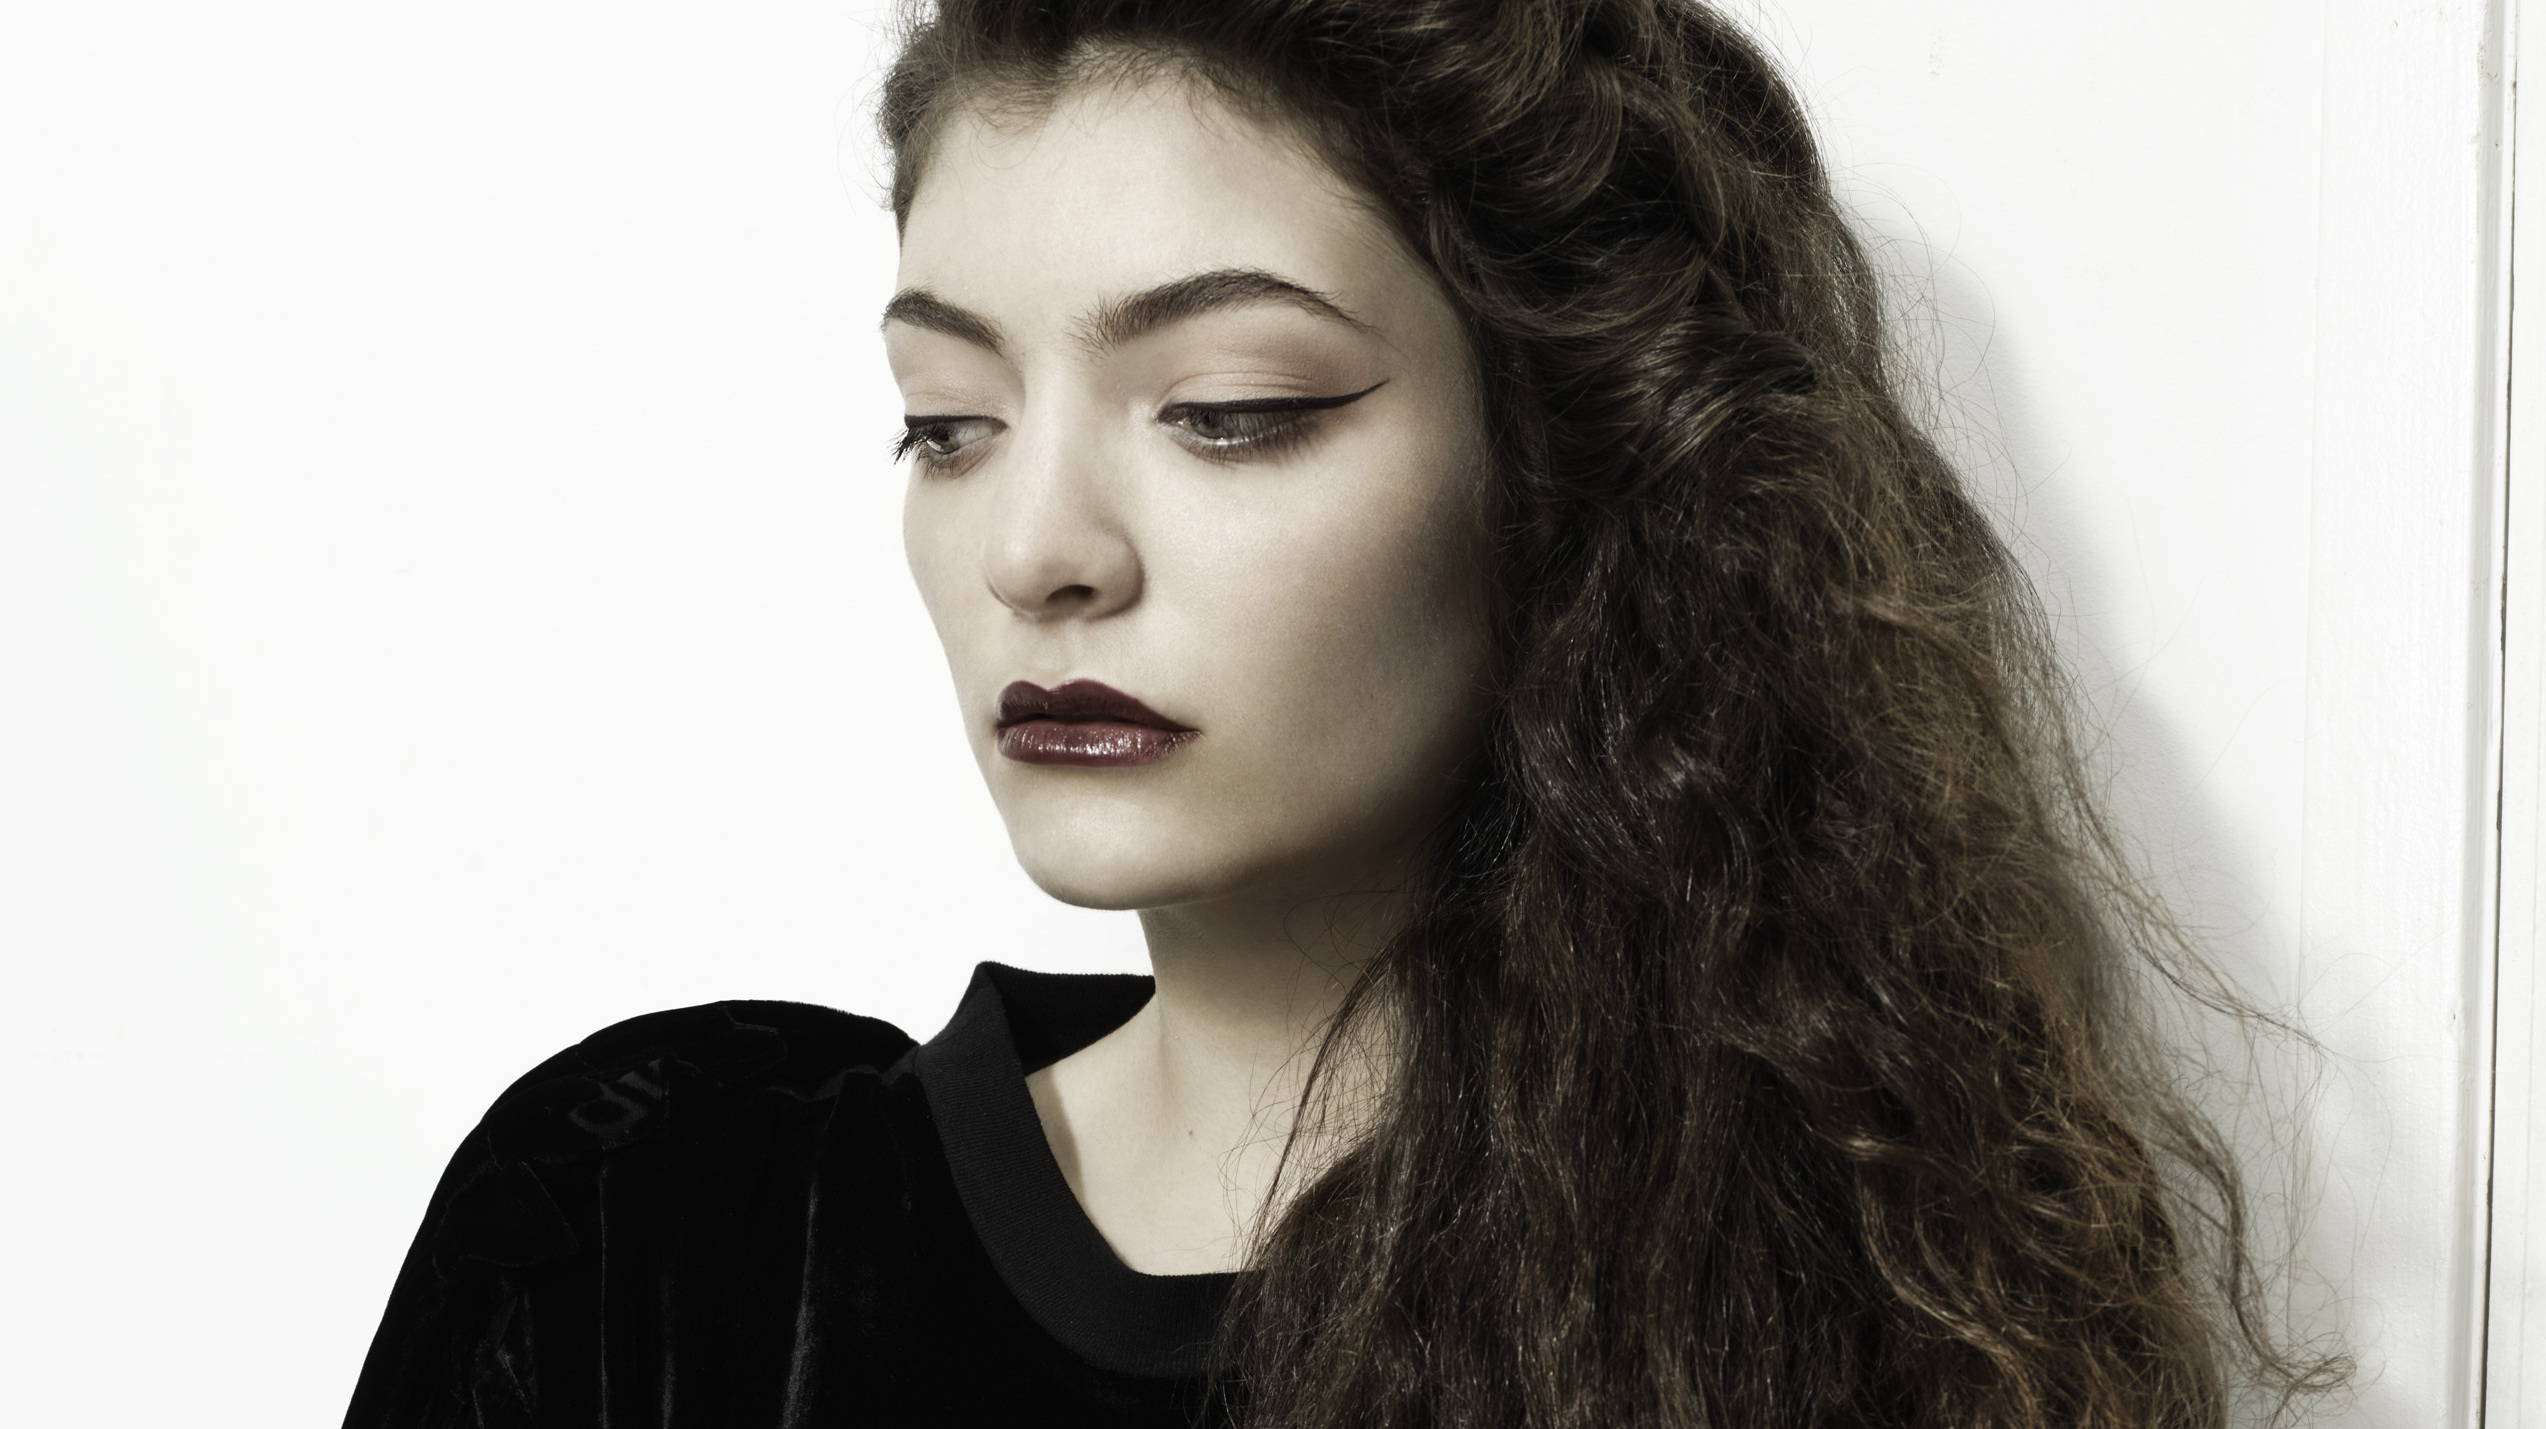 lorde wikilorde royals, lorde – green light, lorde team, lorde green light скачать, lorde tennis court, lorde – yellow flicker beat, lorde liability перевод, lorde певица, lorde royals скачать, lorde pure heroine, lorde скачать, lorde glory and gore, lorde royals lyrics, lorde green light lyrics, lorde instagram, lorde песни, lorde перевод, lorde wiki, lorde team lyrics, lorde – a world alone